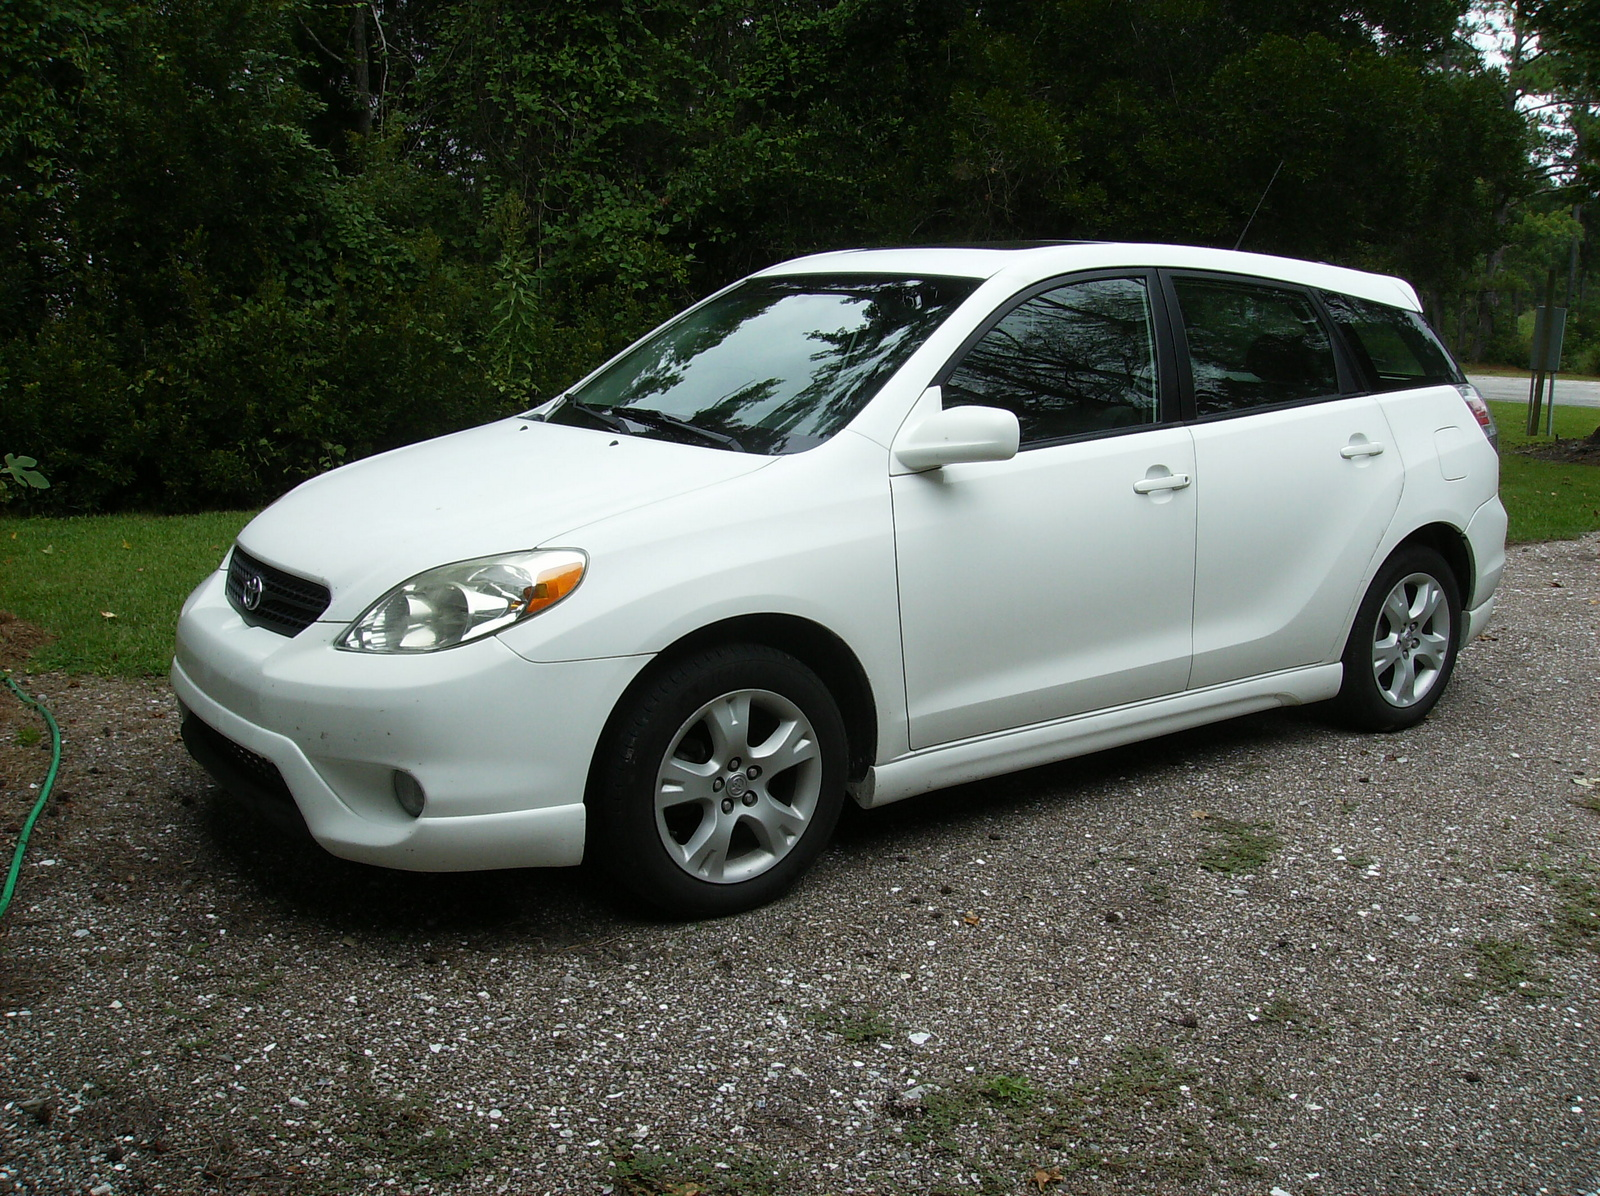 2010 toyota matrix reviews ratings yahoo autos autos post. Black Bedroom Furniture Sets. Home Design Ideas